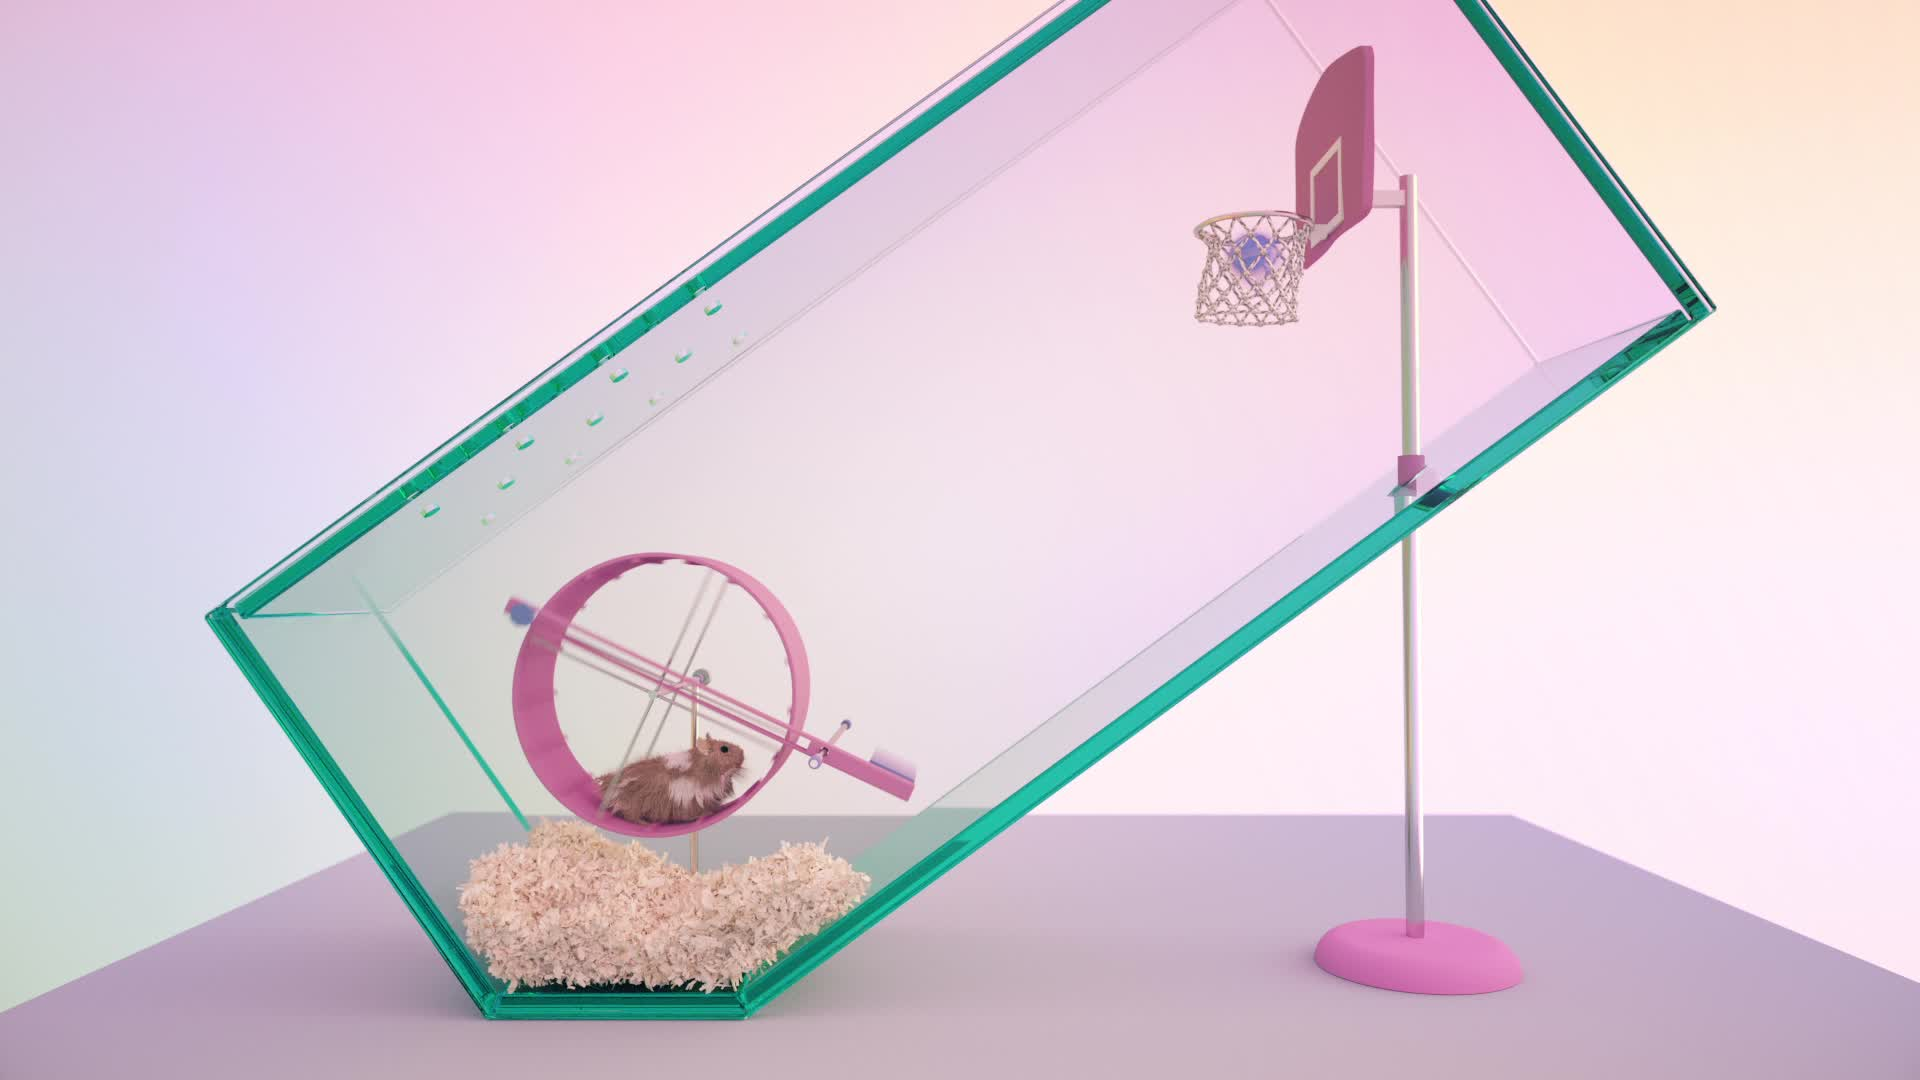 basketball, cinema 4d, hamster, octane, basketball GIFs